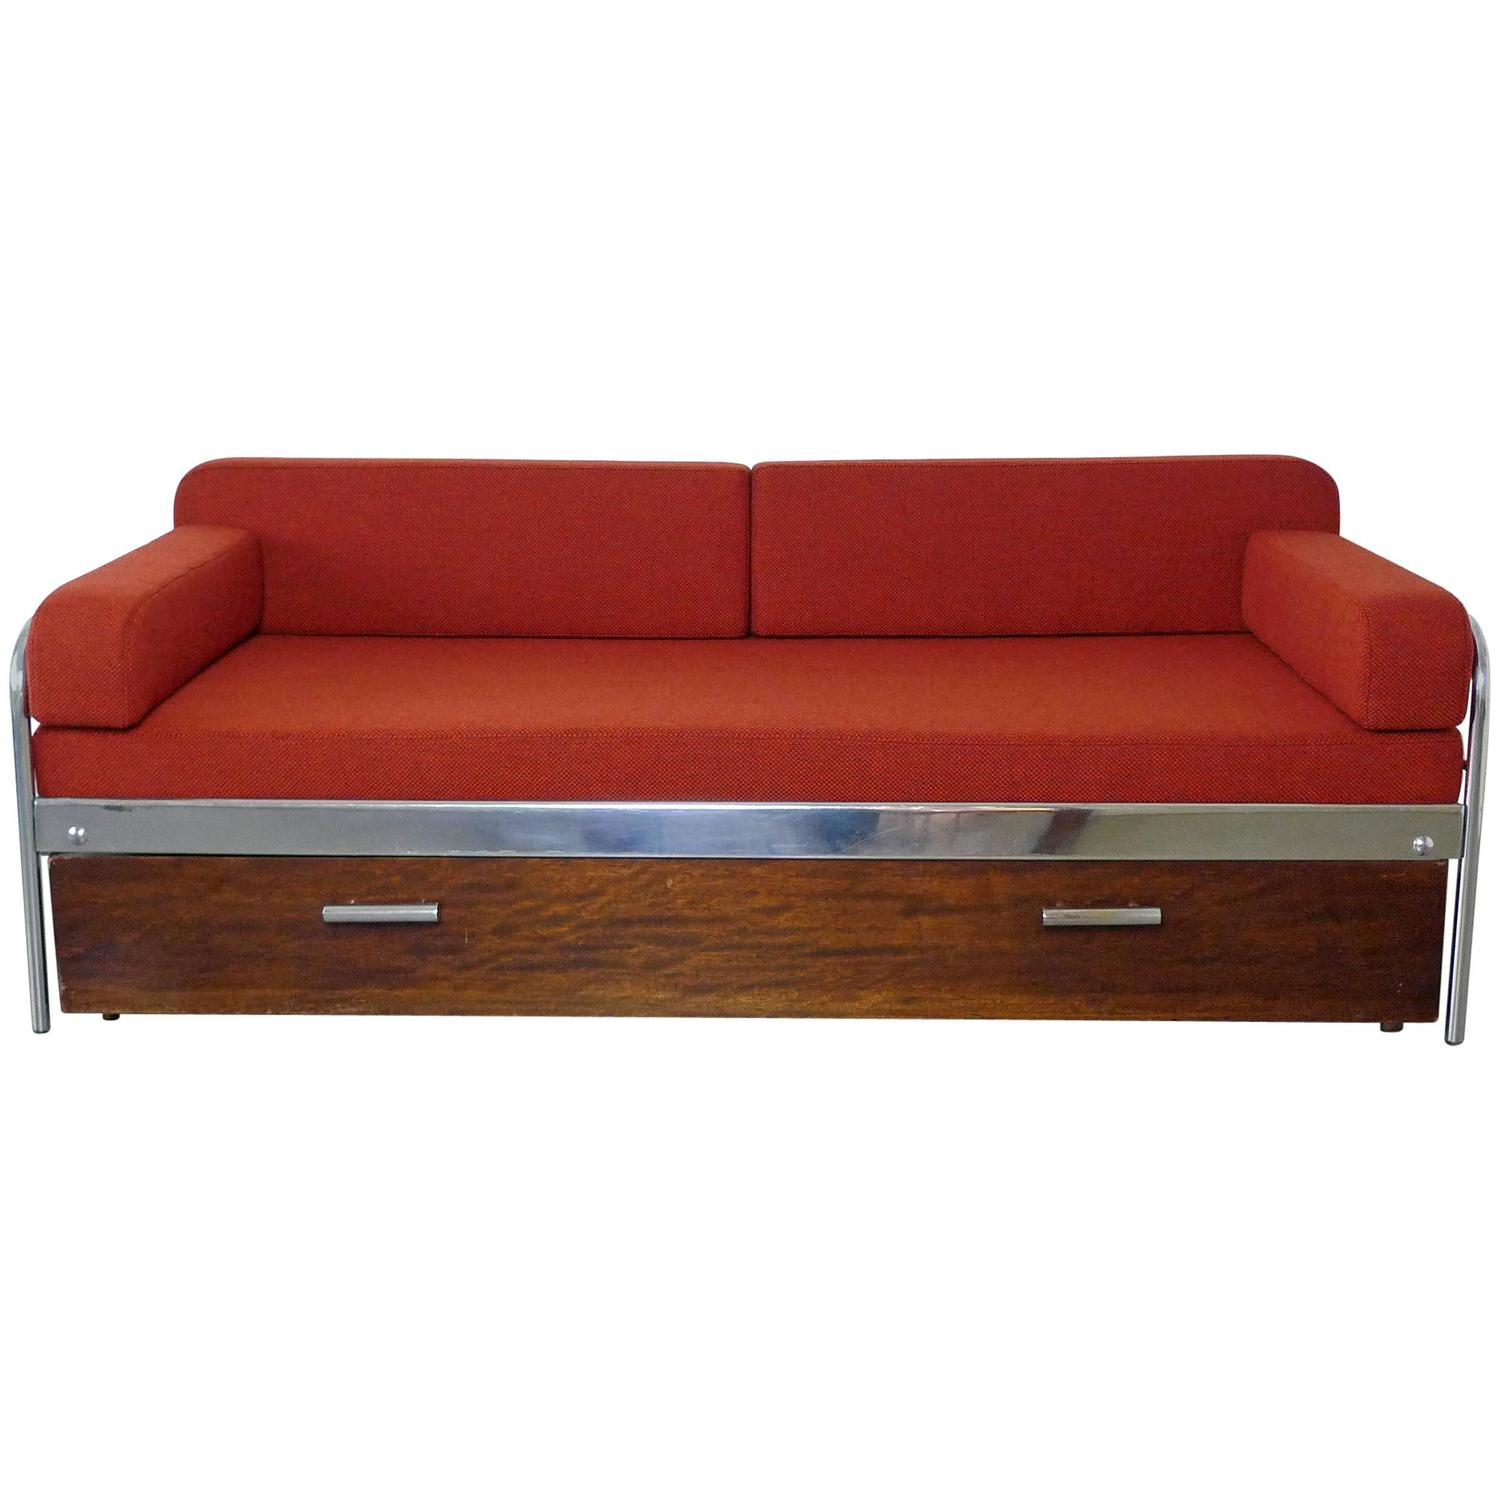 1930s Bauhaus Steel Tube Sofa Bed by Mücke and Melder